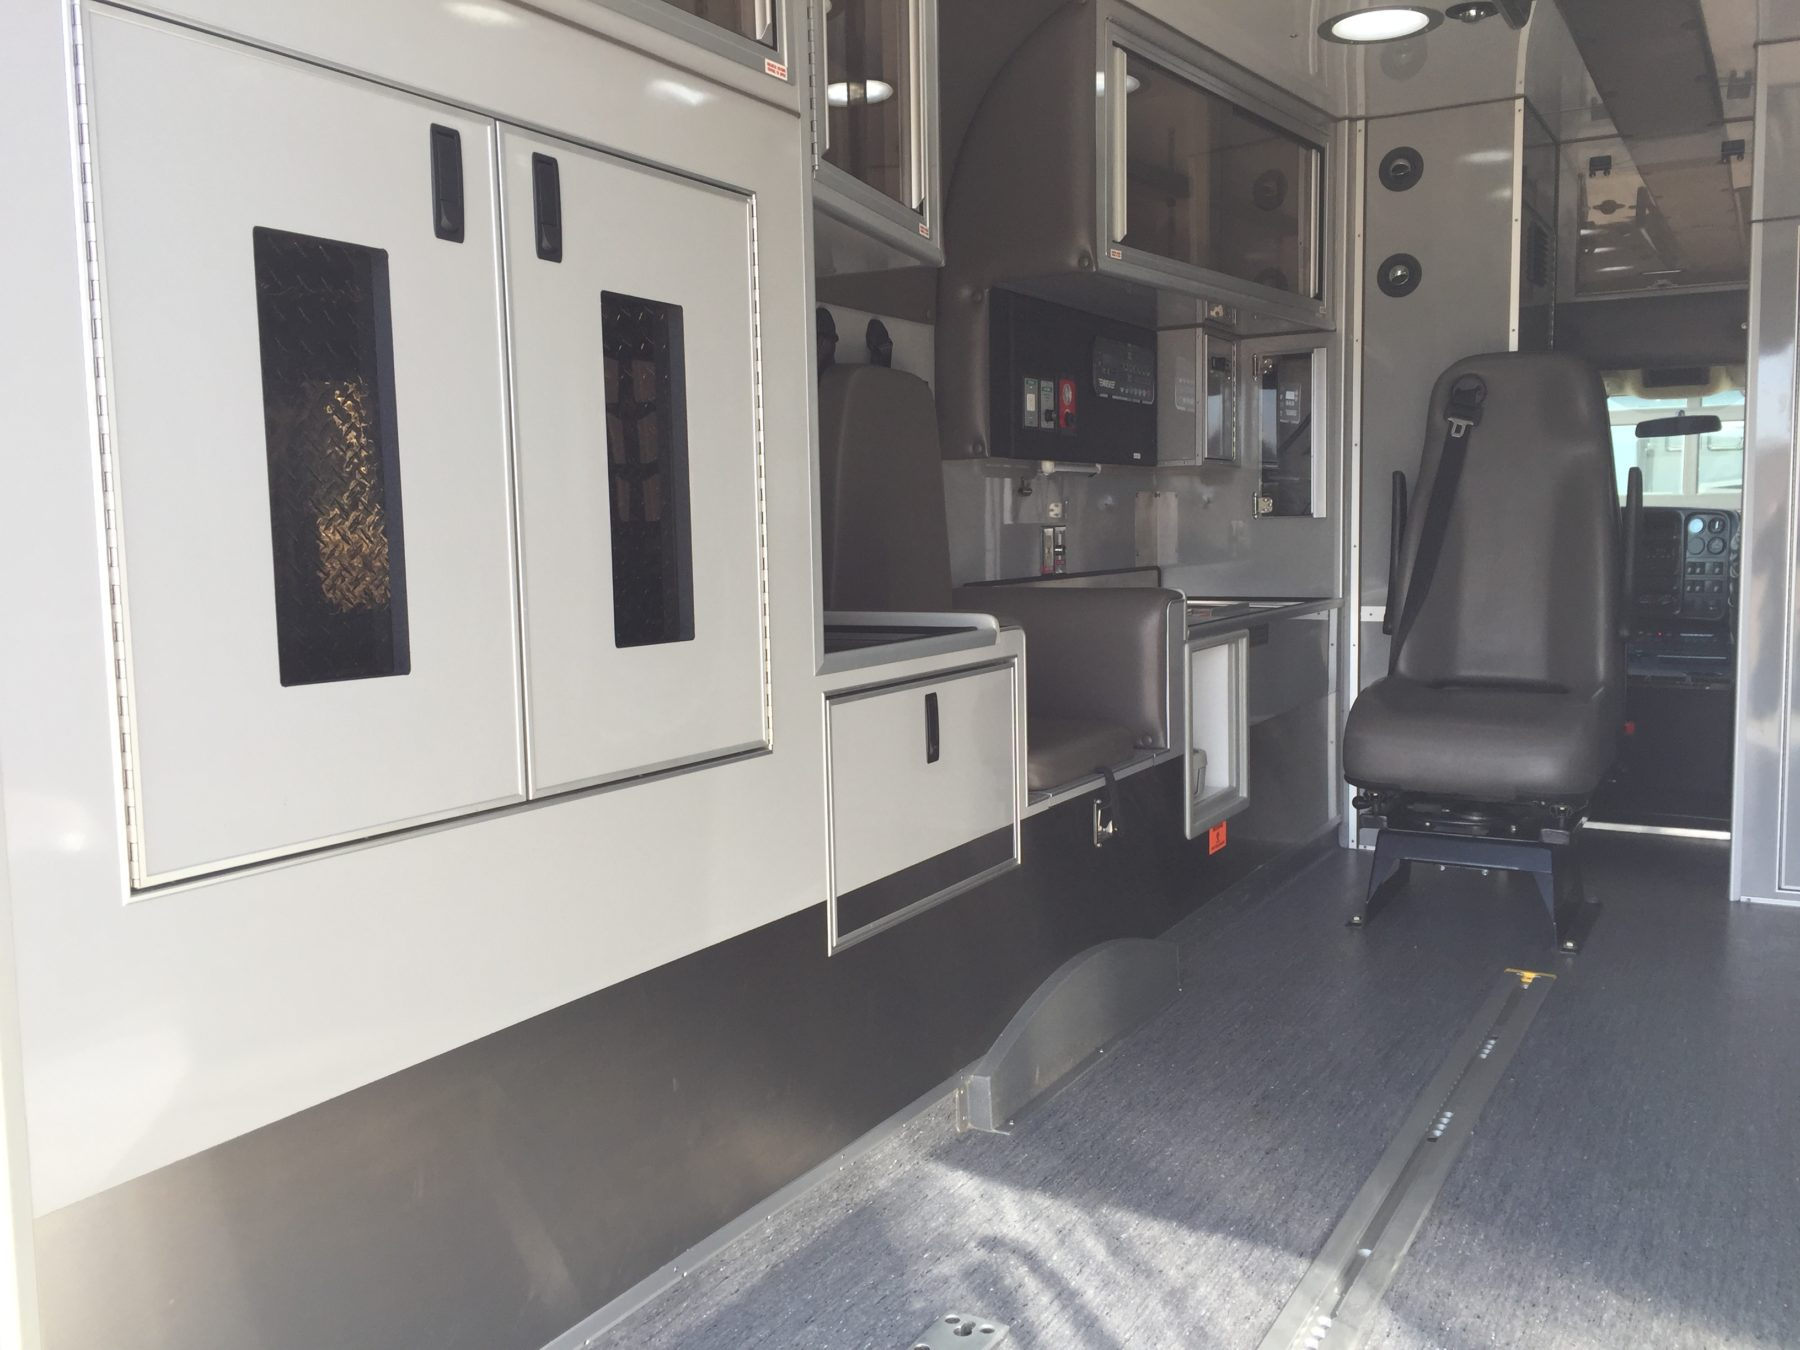 2009 Chevrolet C4500 Heavy Duty Ambulance For Sale – Picture 12